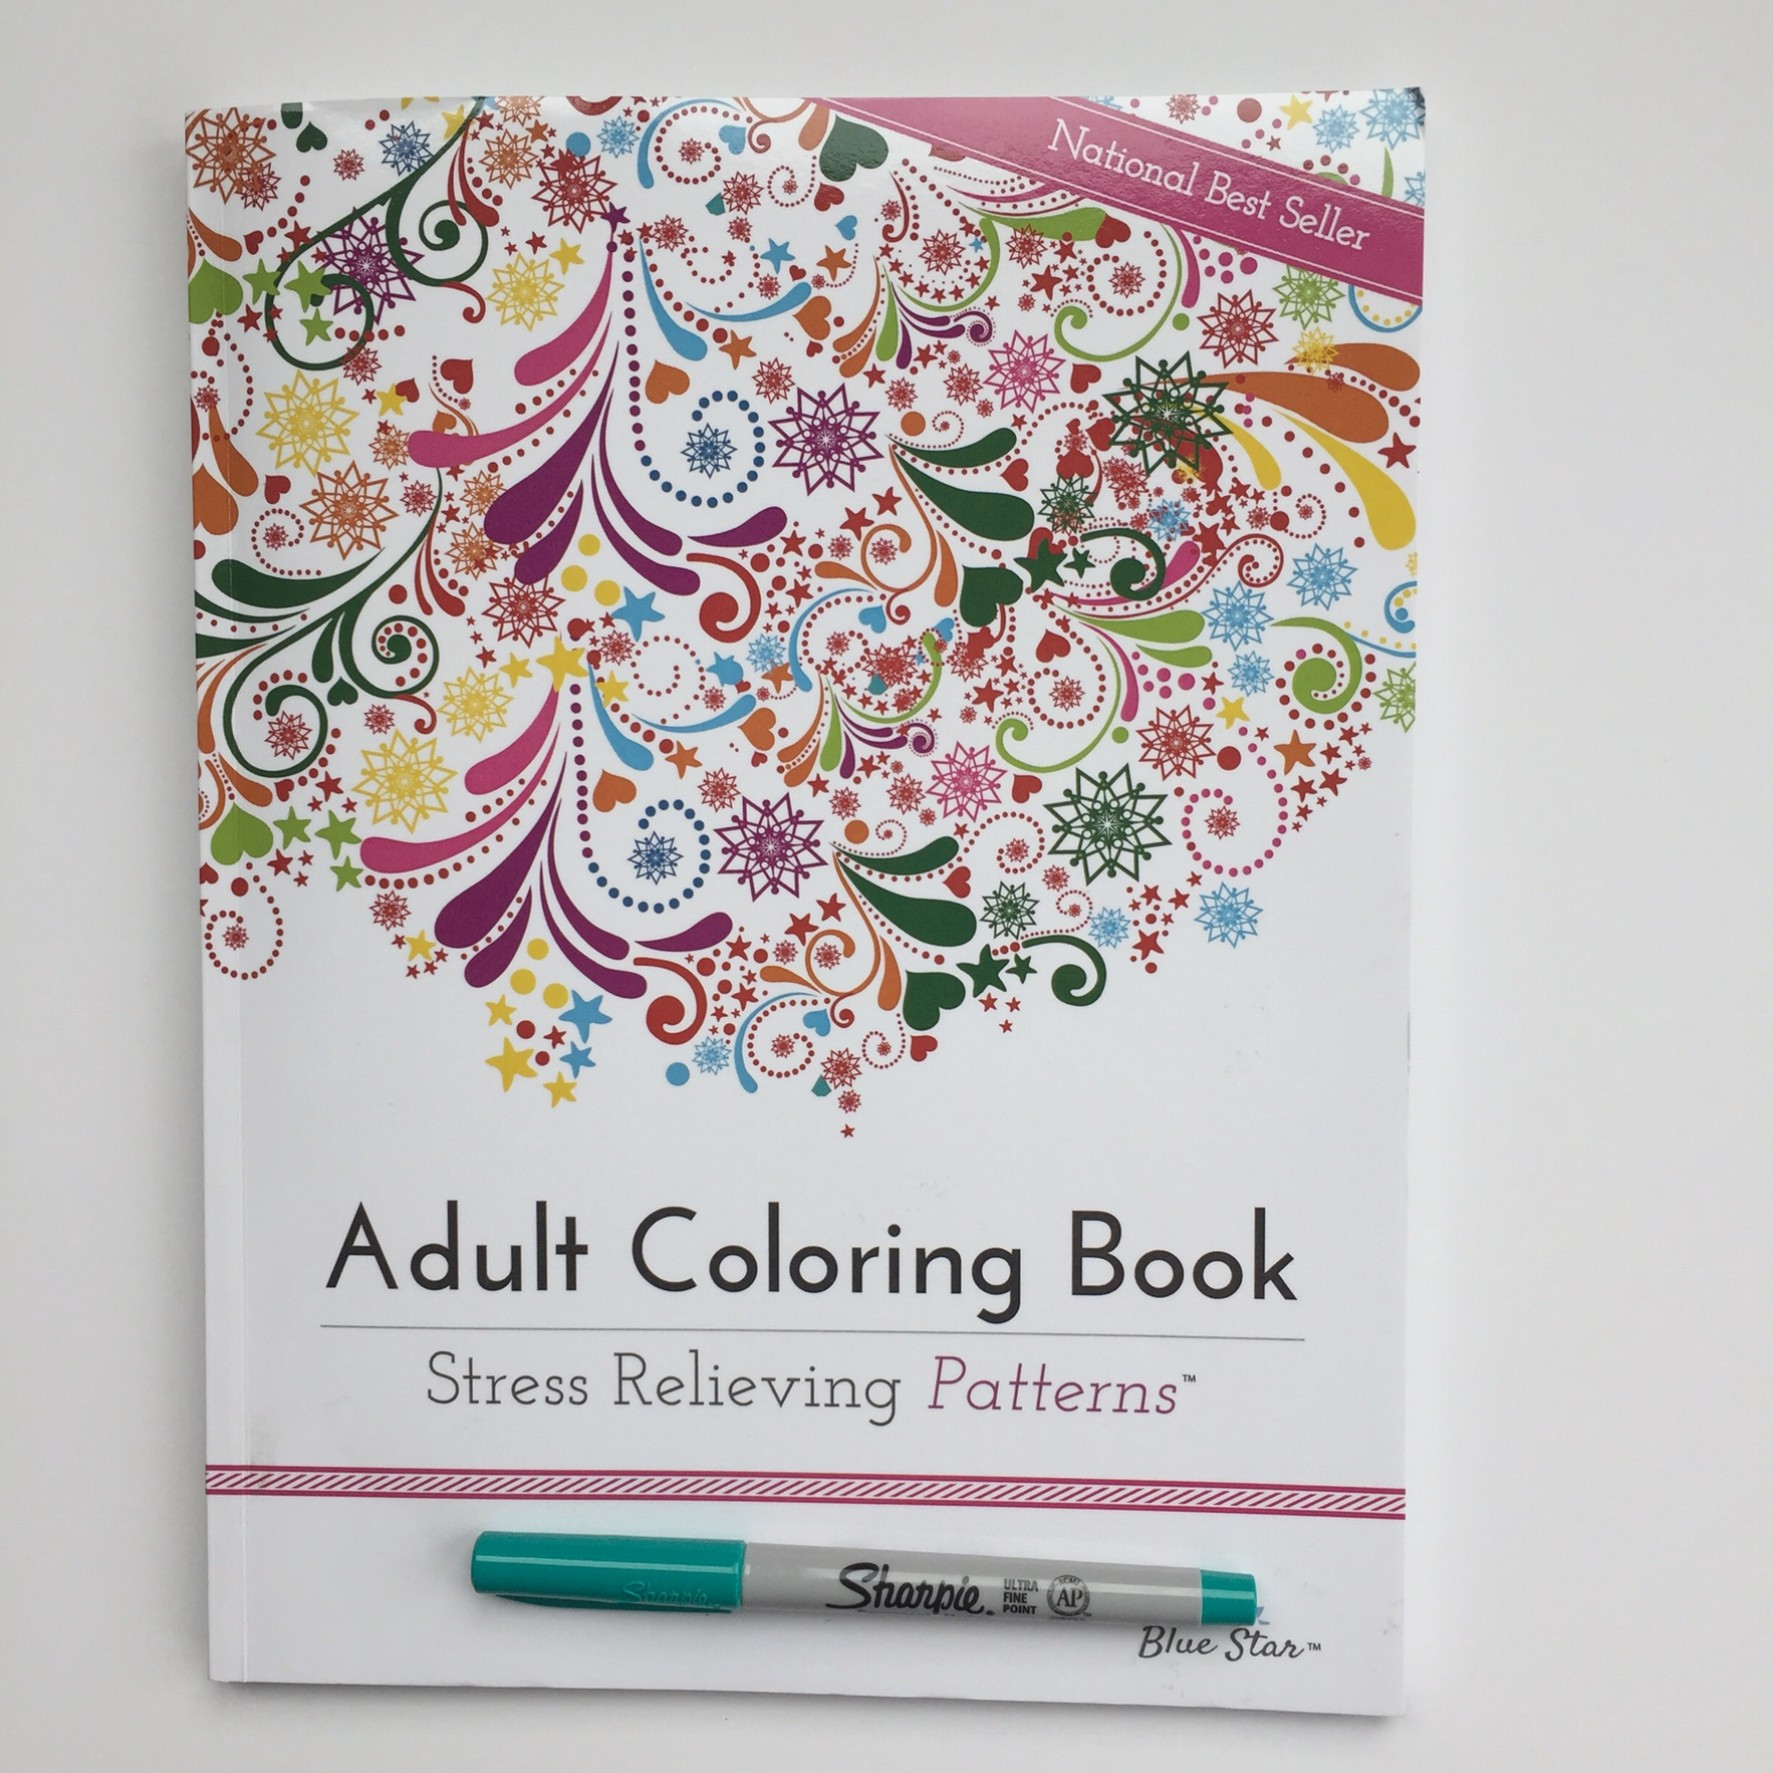 Adult Coloring Book Stress Relieving Patterns Review